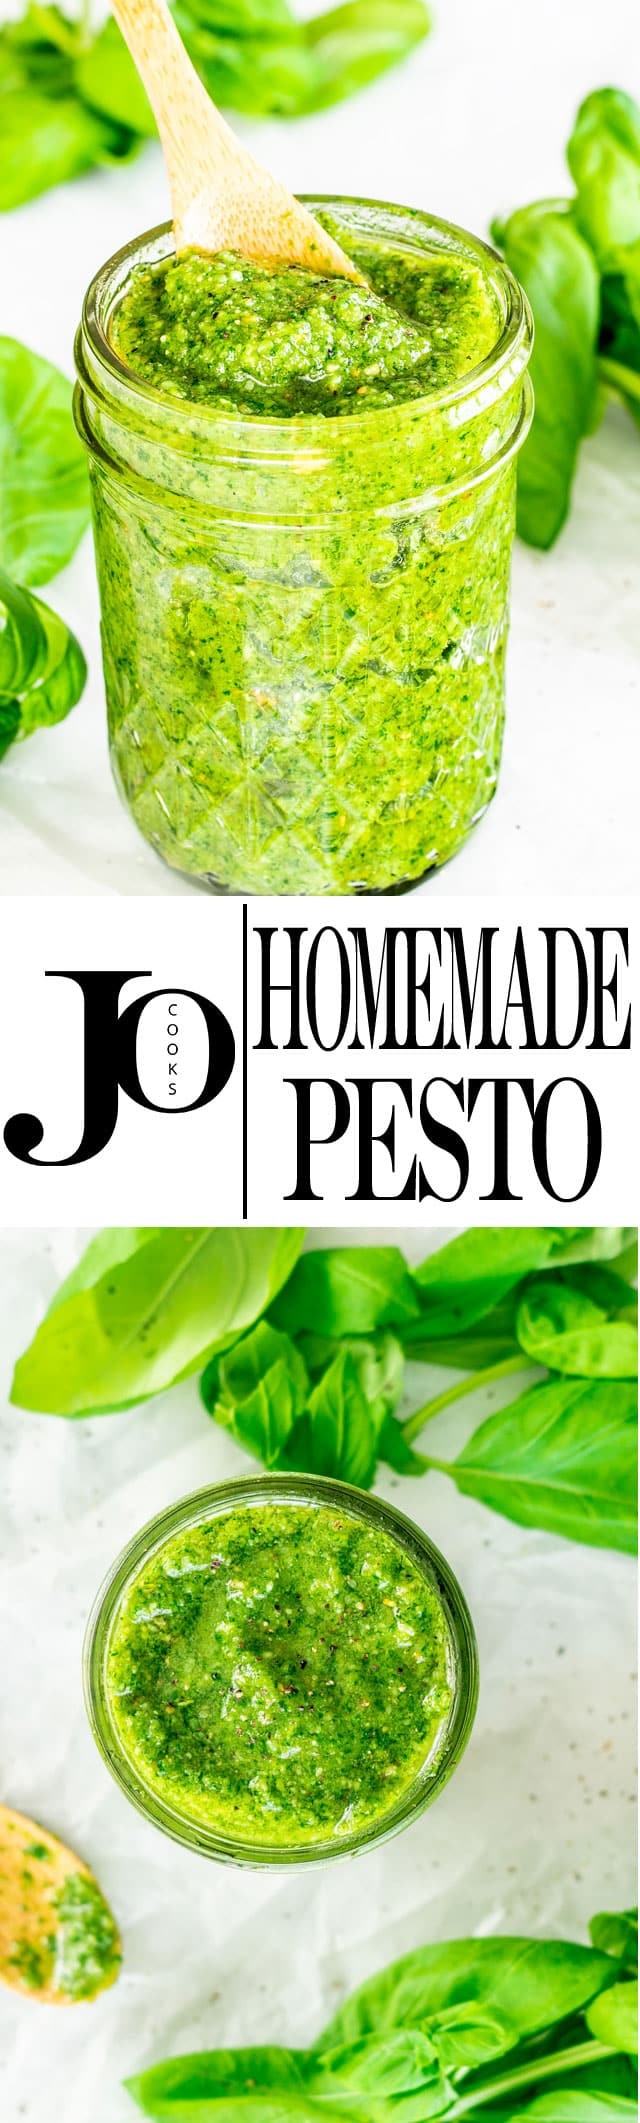 This Easy Homemade Pesto will make you say goodbye to the store bought version. A handful of ingredients is all you need for this no fail delicious pesto! #pesto #homemadepesto #pestorecipe